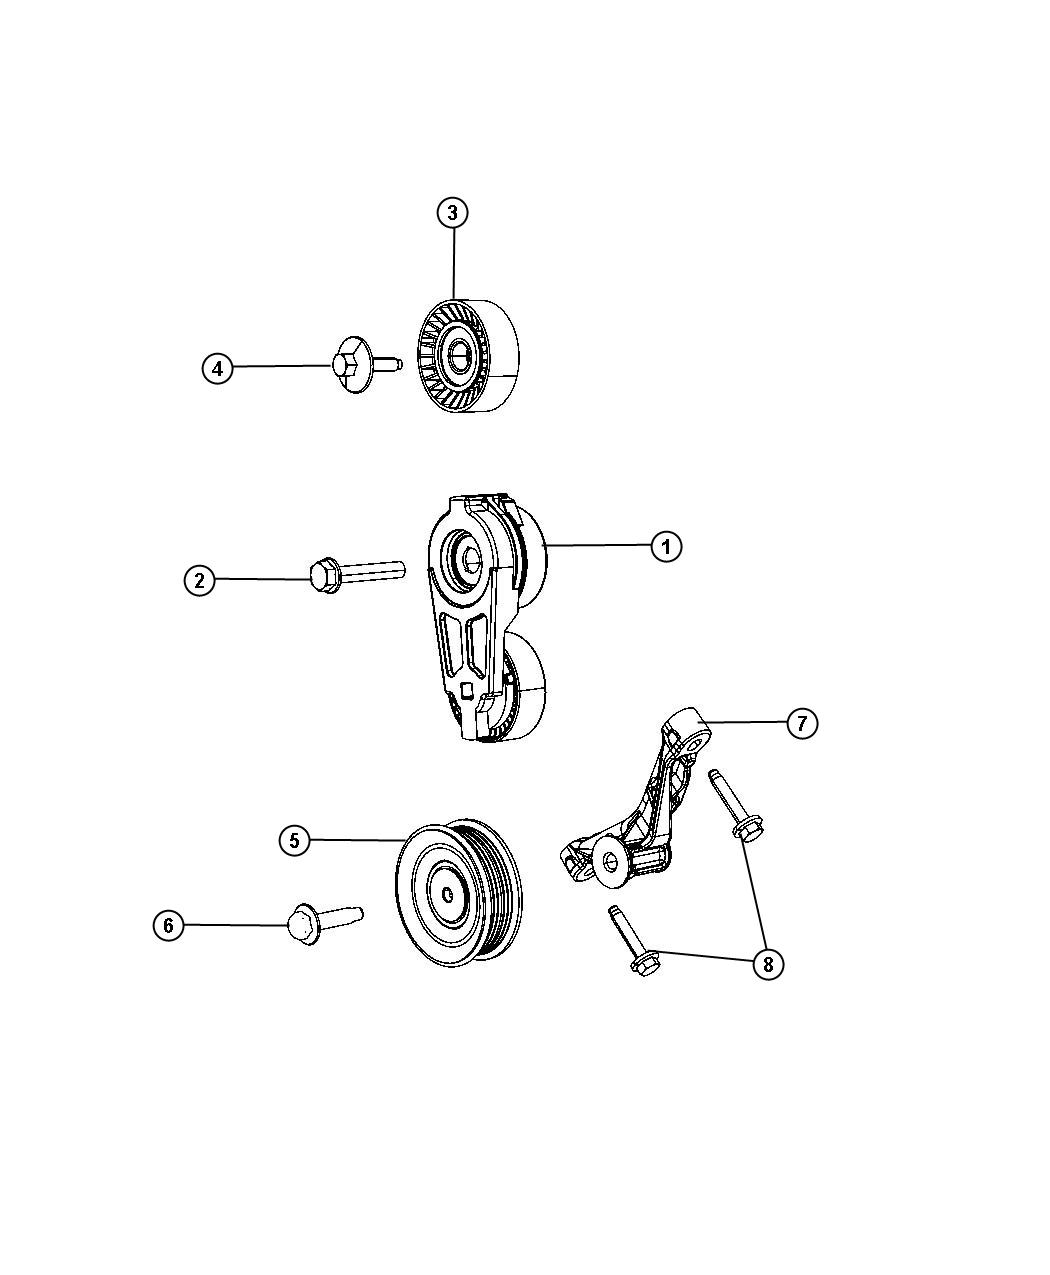 Jeep Wrangler Used For Bolt And Coned Washer Hex